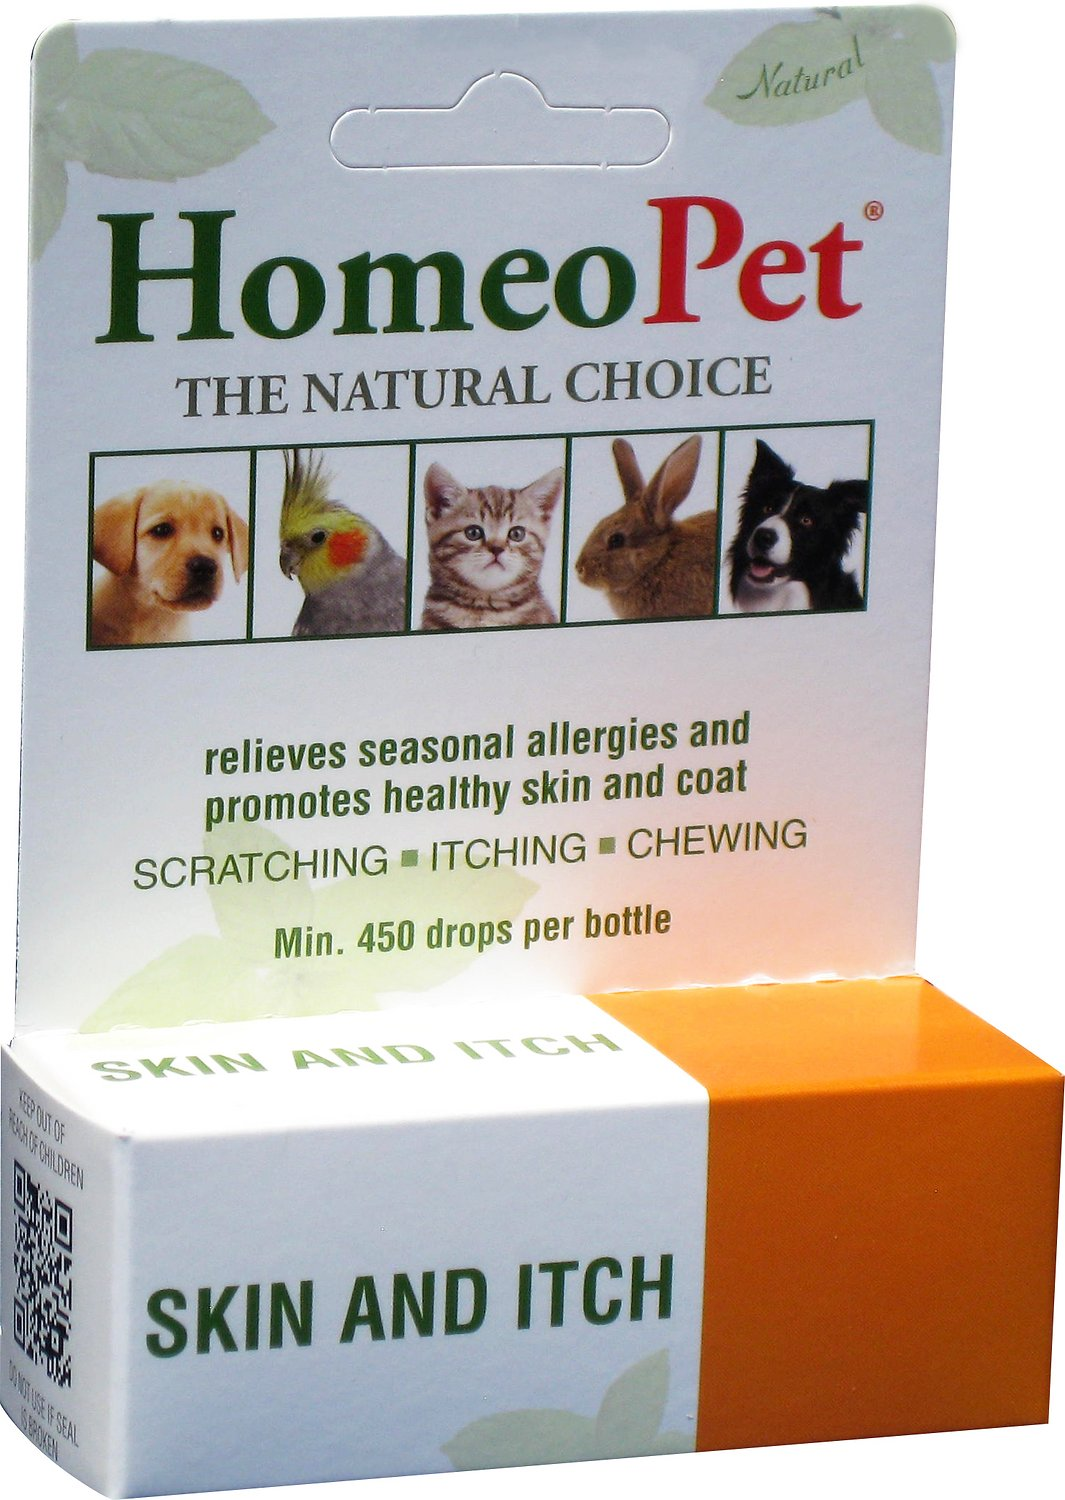 HomeoPet Skin & Itch Dog, Cat, Bird & Small Animal Supplement, 450 drops